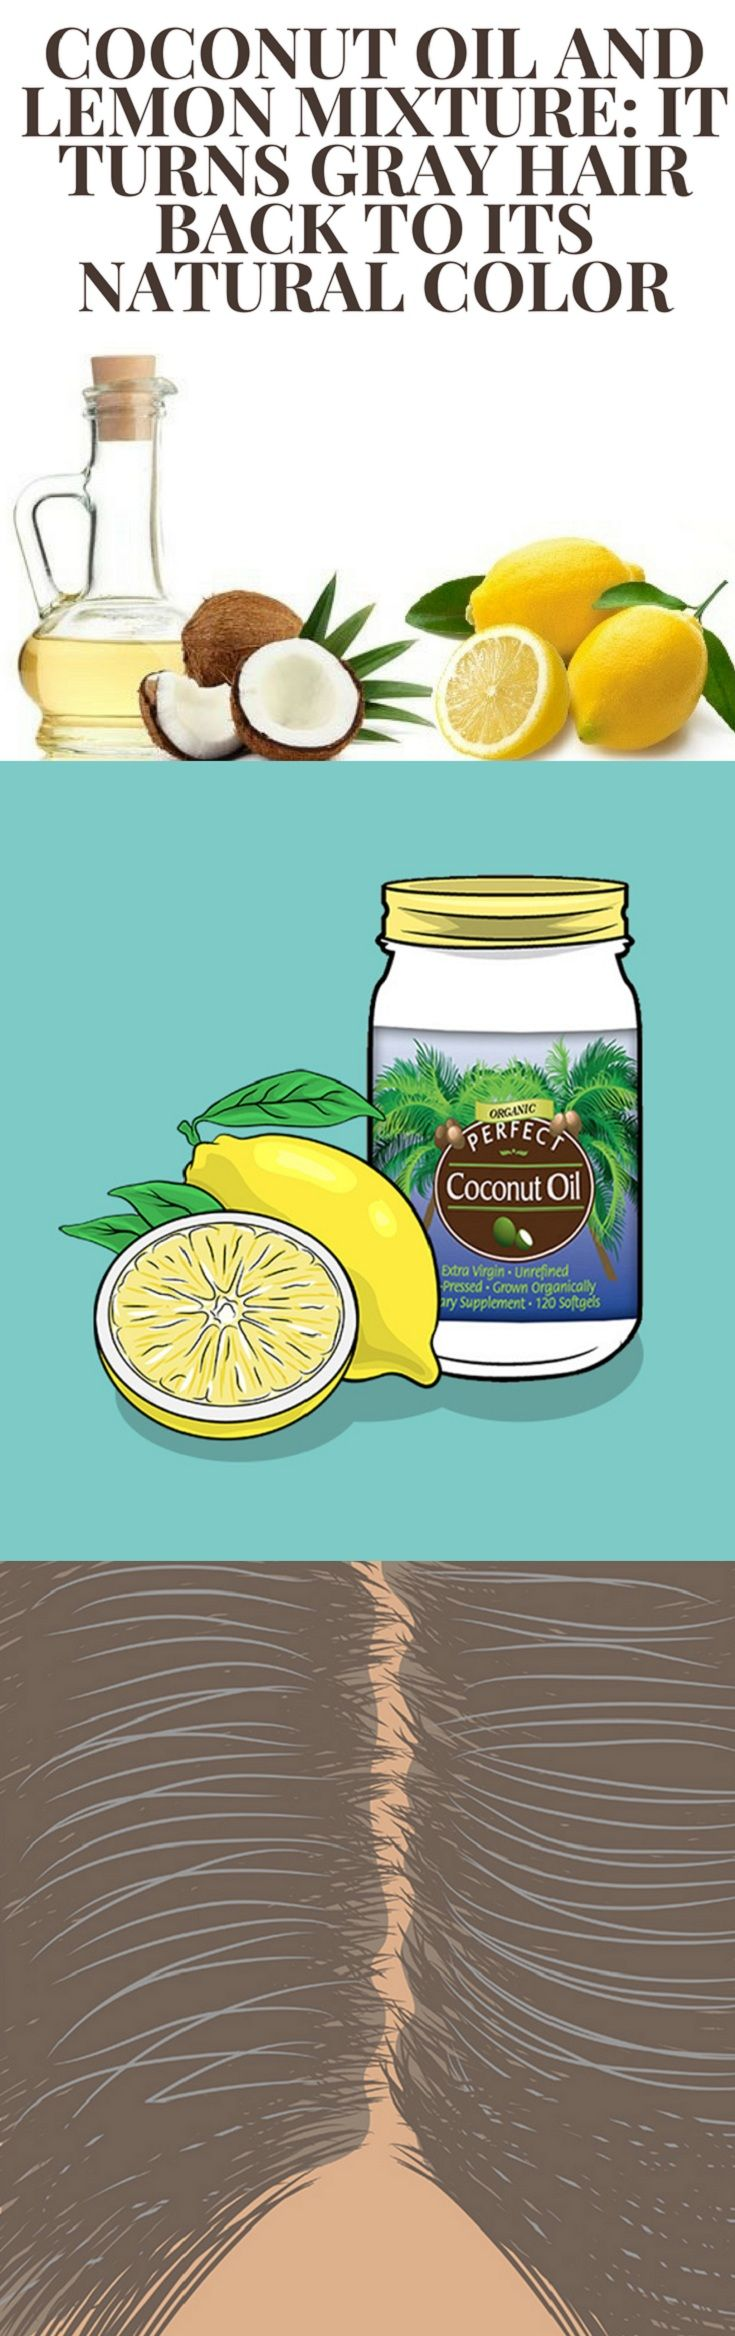 Coconut Oil and Lemon Mixture: It Turns Gray Hair… #Health #Wellness #Fitness #Tips #Food #Motivation #Remedies #Natural #Mental #Holistic #Skin #Woman's #Facts #Care #Lifestyle #Detox #Beauty #Diet #Body #Nutricion #Skincare #NaturalTreatments #HealthyLifestyle